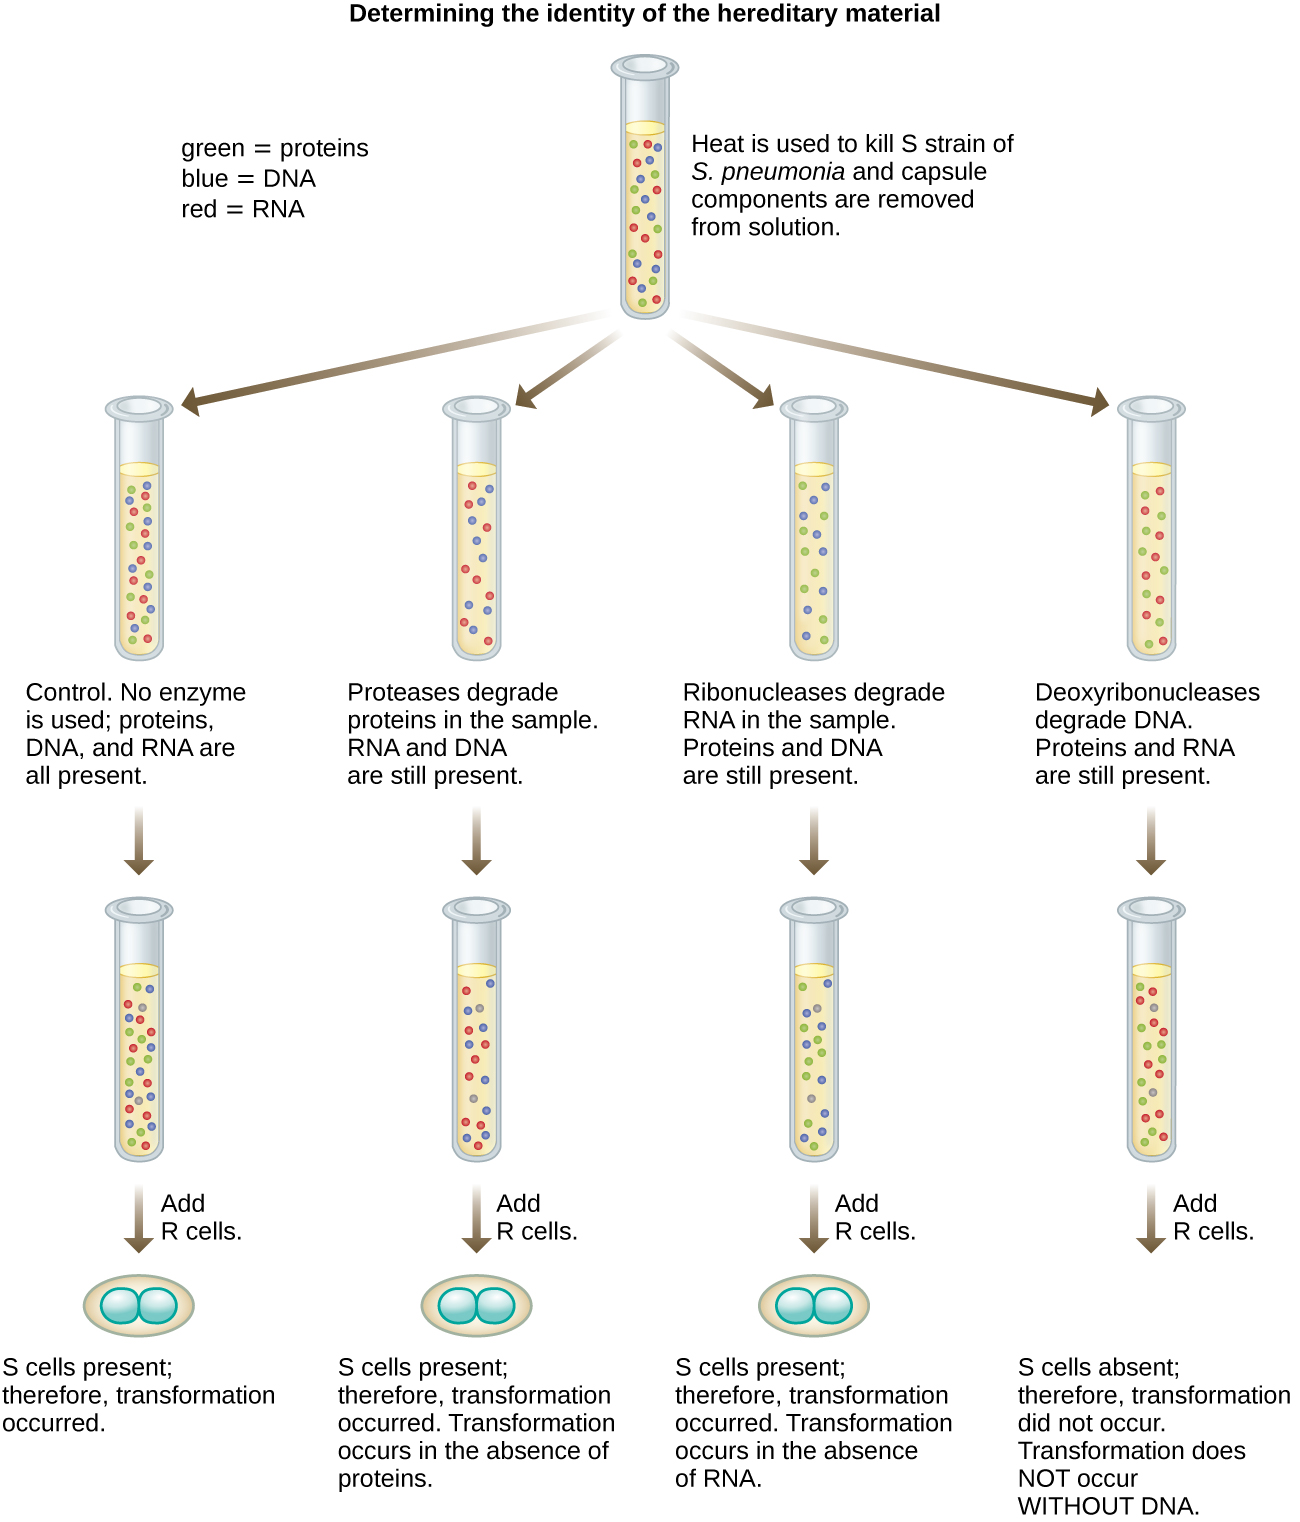 A diagram of Avery, MaLeod and McCarty's experiment: Determining the identity of the hereditary material. Heat is used to kill S strain of S. pneumonia and capsule components are removed from solution. This produes a solution with DNA, RNA and proteins. This solution is then placed into 4 tubes. In the control, no enzymes are used so DNA, RNA, and proteins are all present. R cells are then added and S cells are found because transformation occurred. In the next experiment proteases degrade proteins in the sample, leaving DNA and RNA. R cells are added and S cells are found. Therefore, transformation occurred in the absence of proteins. In the next experiment ribonucleases degrade RNA in the sample, leaving DNA and proteins. R cells are added and S cells are found. Therefore, transformation occurred in the absence of RNA. In the final experiment deoxyribonucleases degrade DNA in the sample, leaving proteins and RNA. R cells are added and S cells are not found. Therefore, transformation does not occur without DNA. DNA is necessary for transformation.